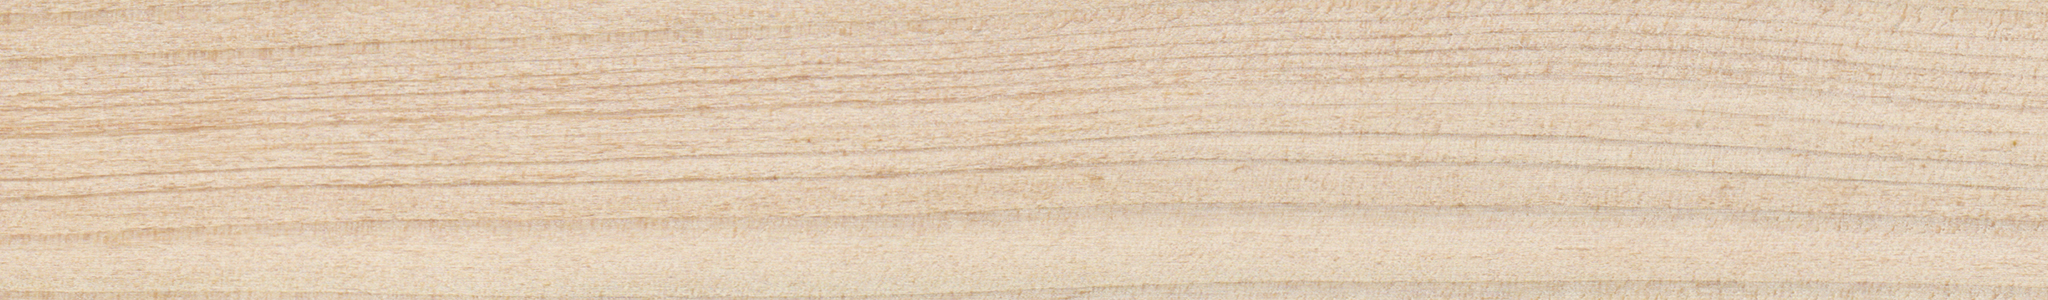 HD 75330 Veneer Edge Larch Thick